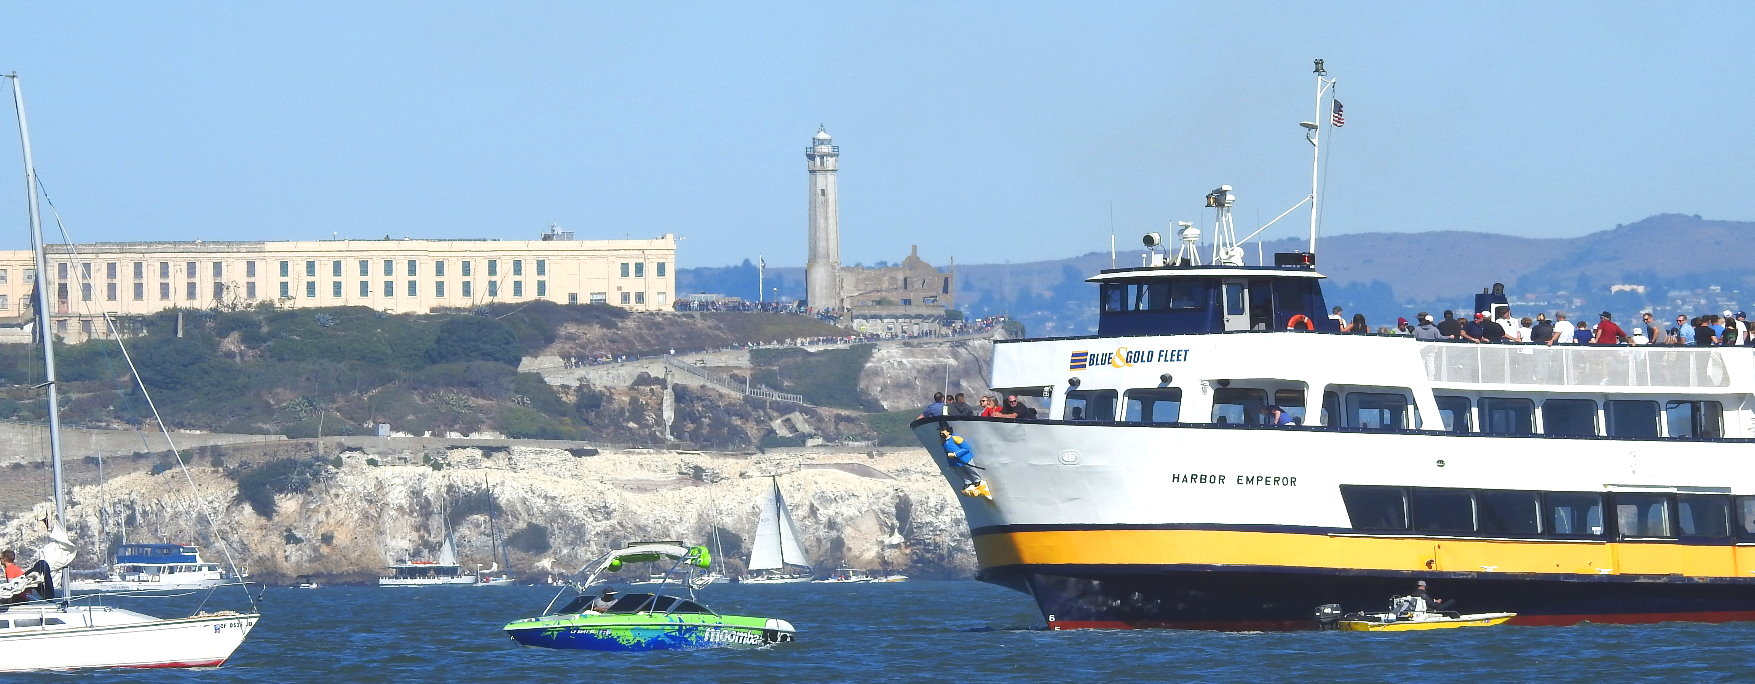 san_francisco_bay_cruises__ferry_trip_in_the_bay